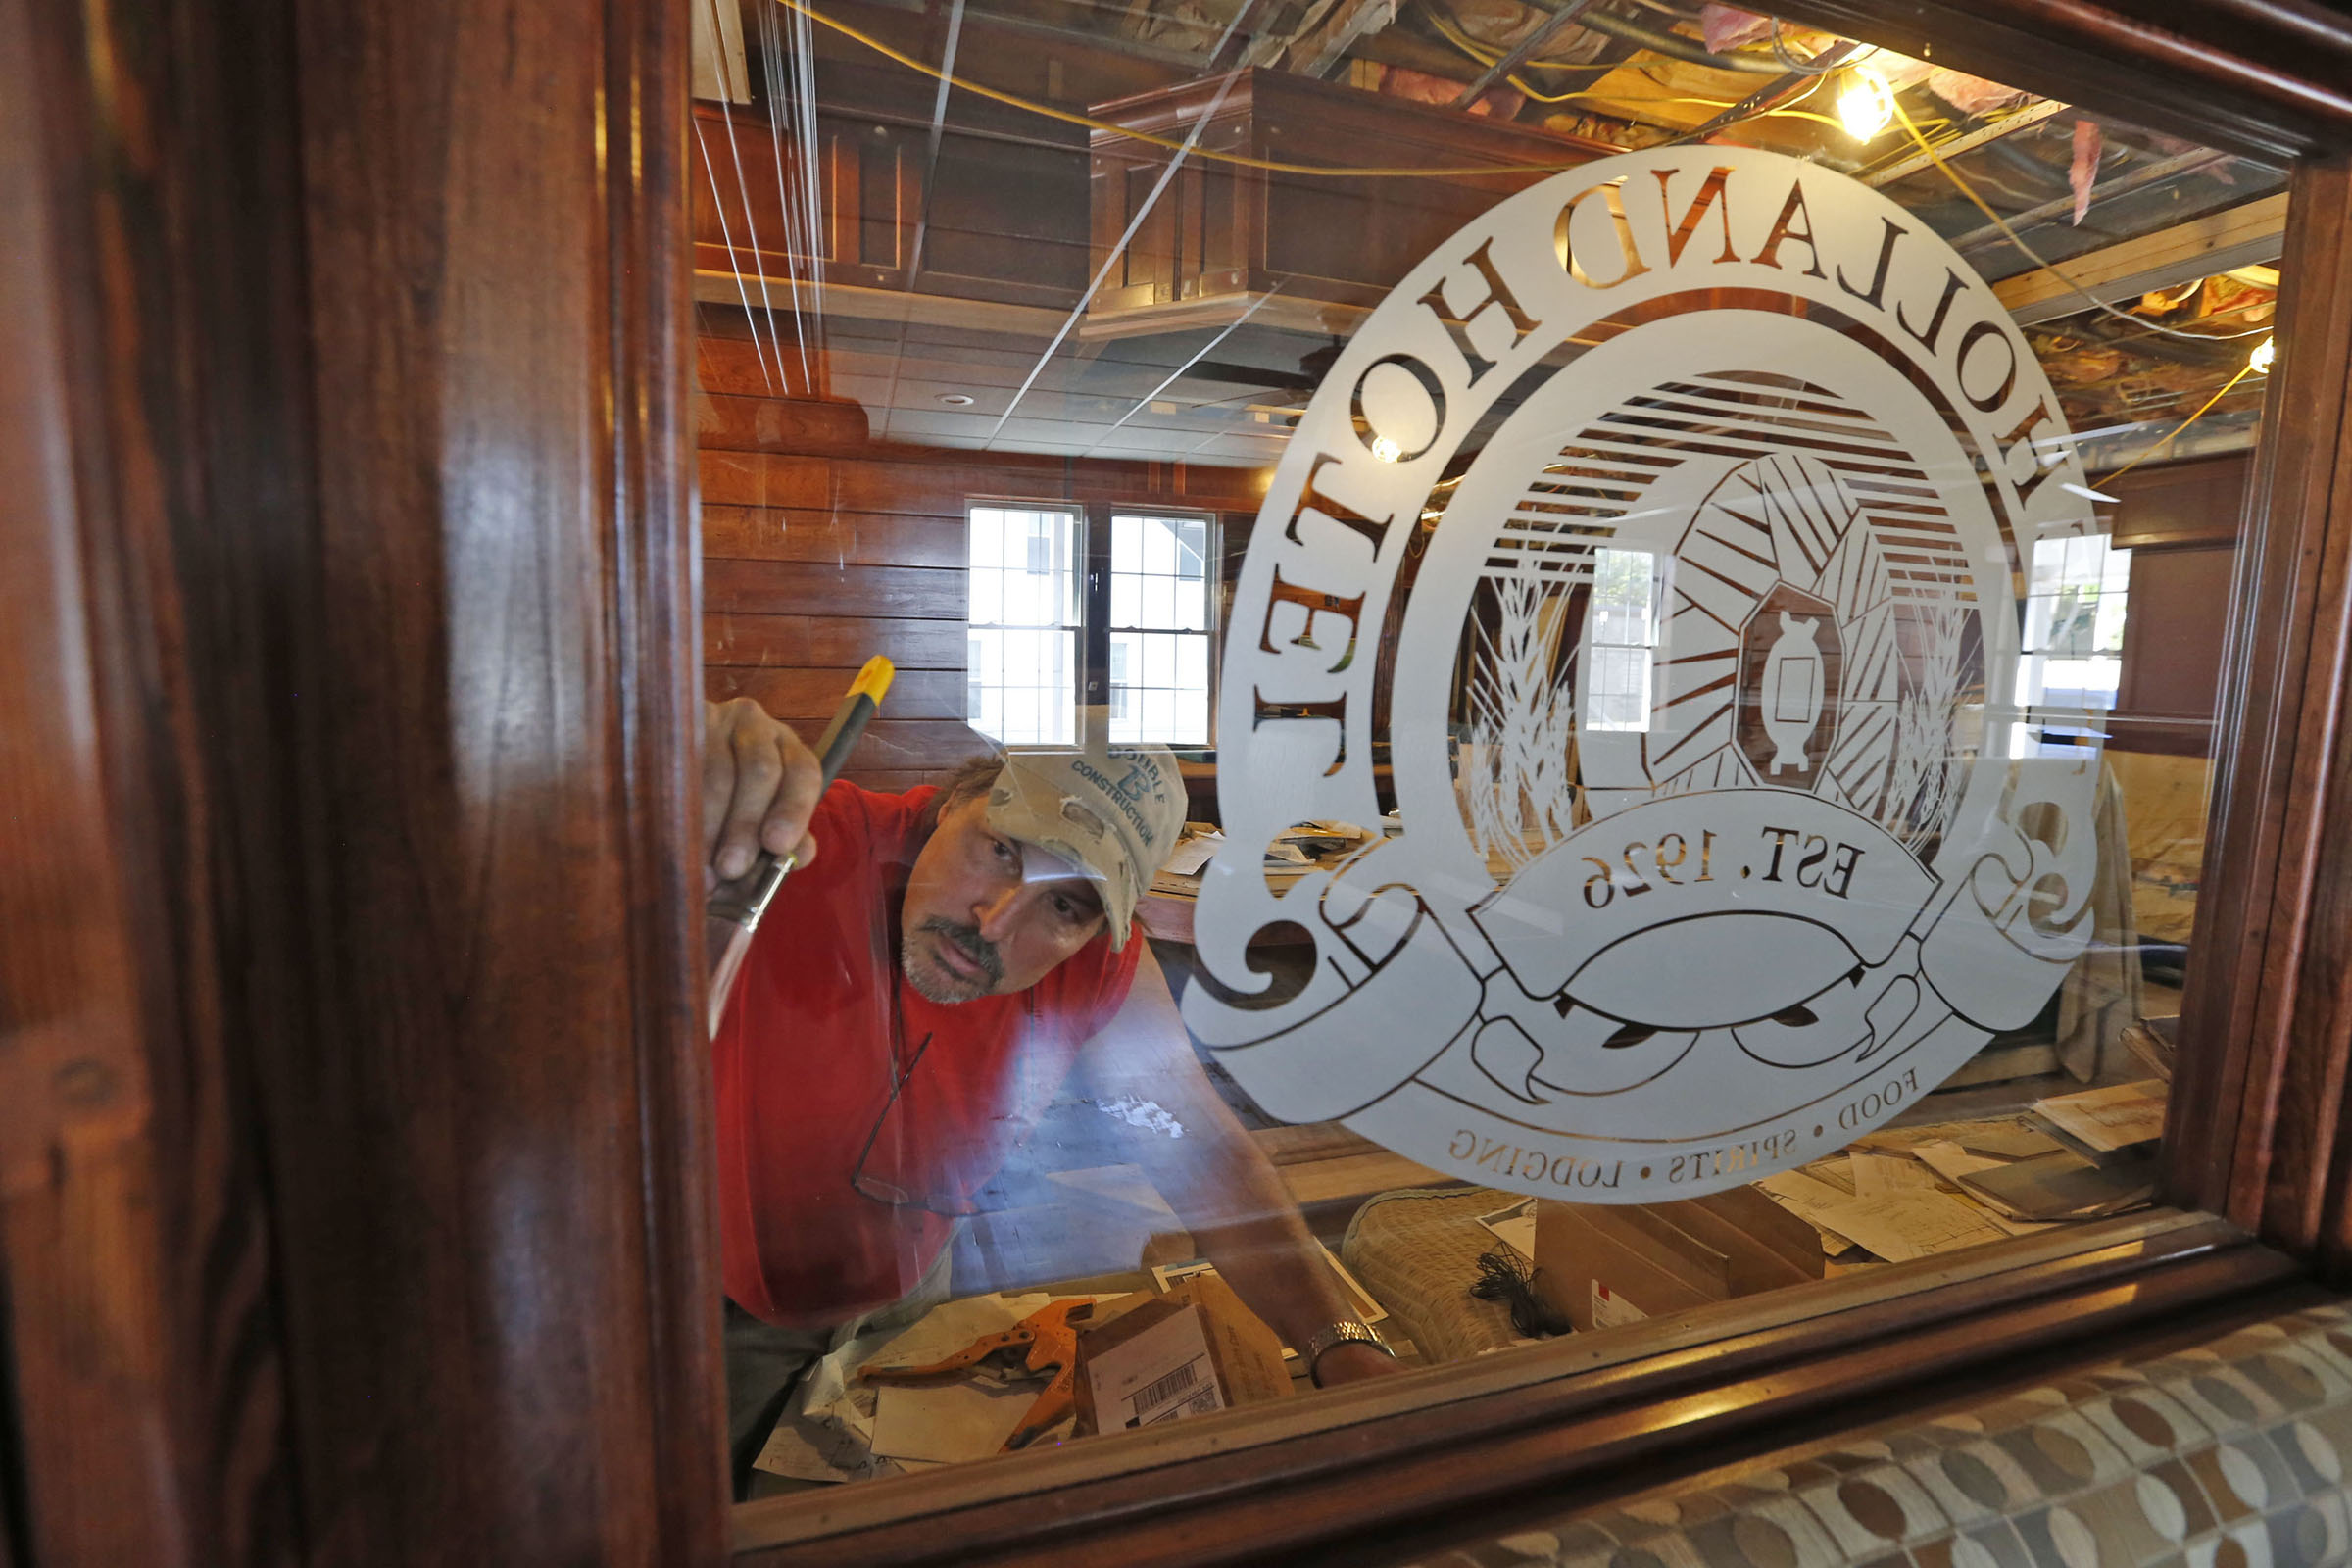 Main Street Monday--- Kevin Pfister, one of the construction foremans at the Holland Hotel remodel varnishes a section of the dining room at said establishment on Main St. in Holland on Monday, Sept. 19, 2016. The 5 room hotel and eatery is scheduled to open just before the Tulip Festival in 2017. (Robert Kirkham/Buffalo News)